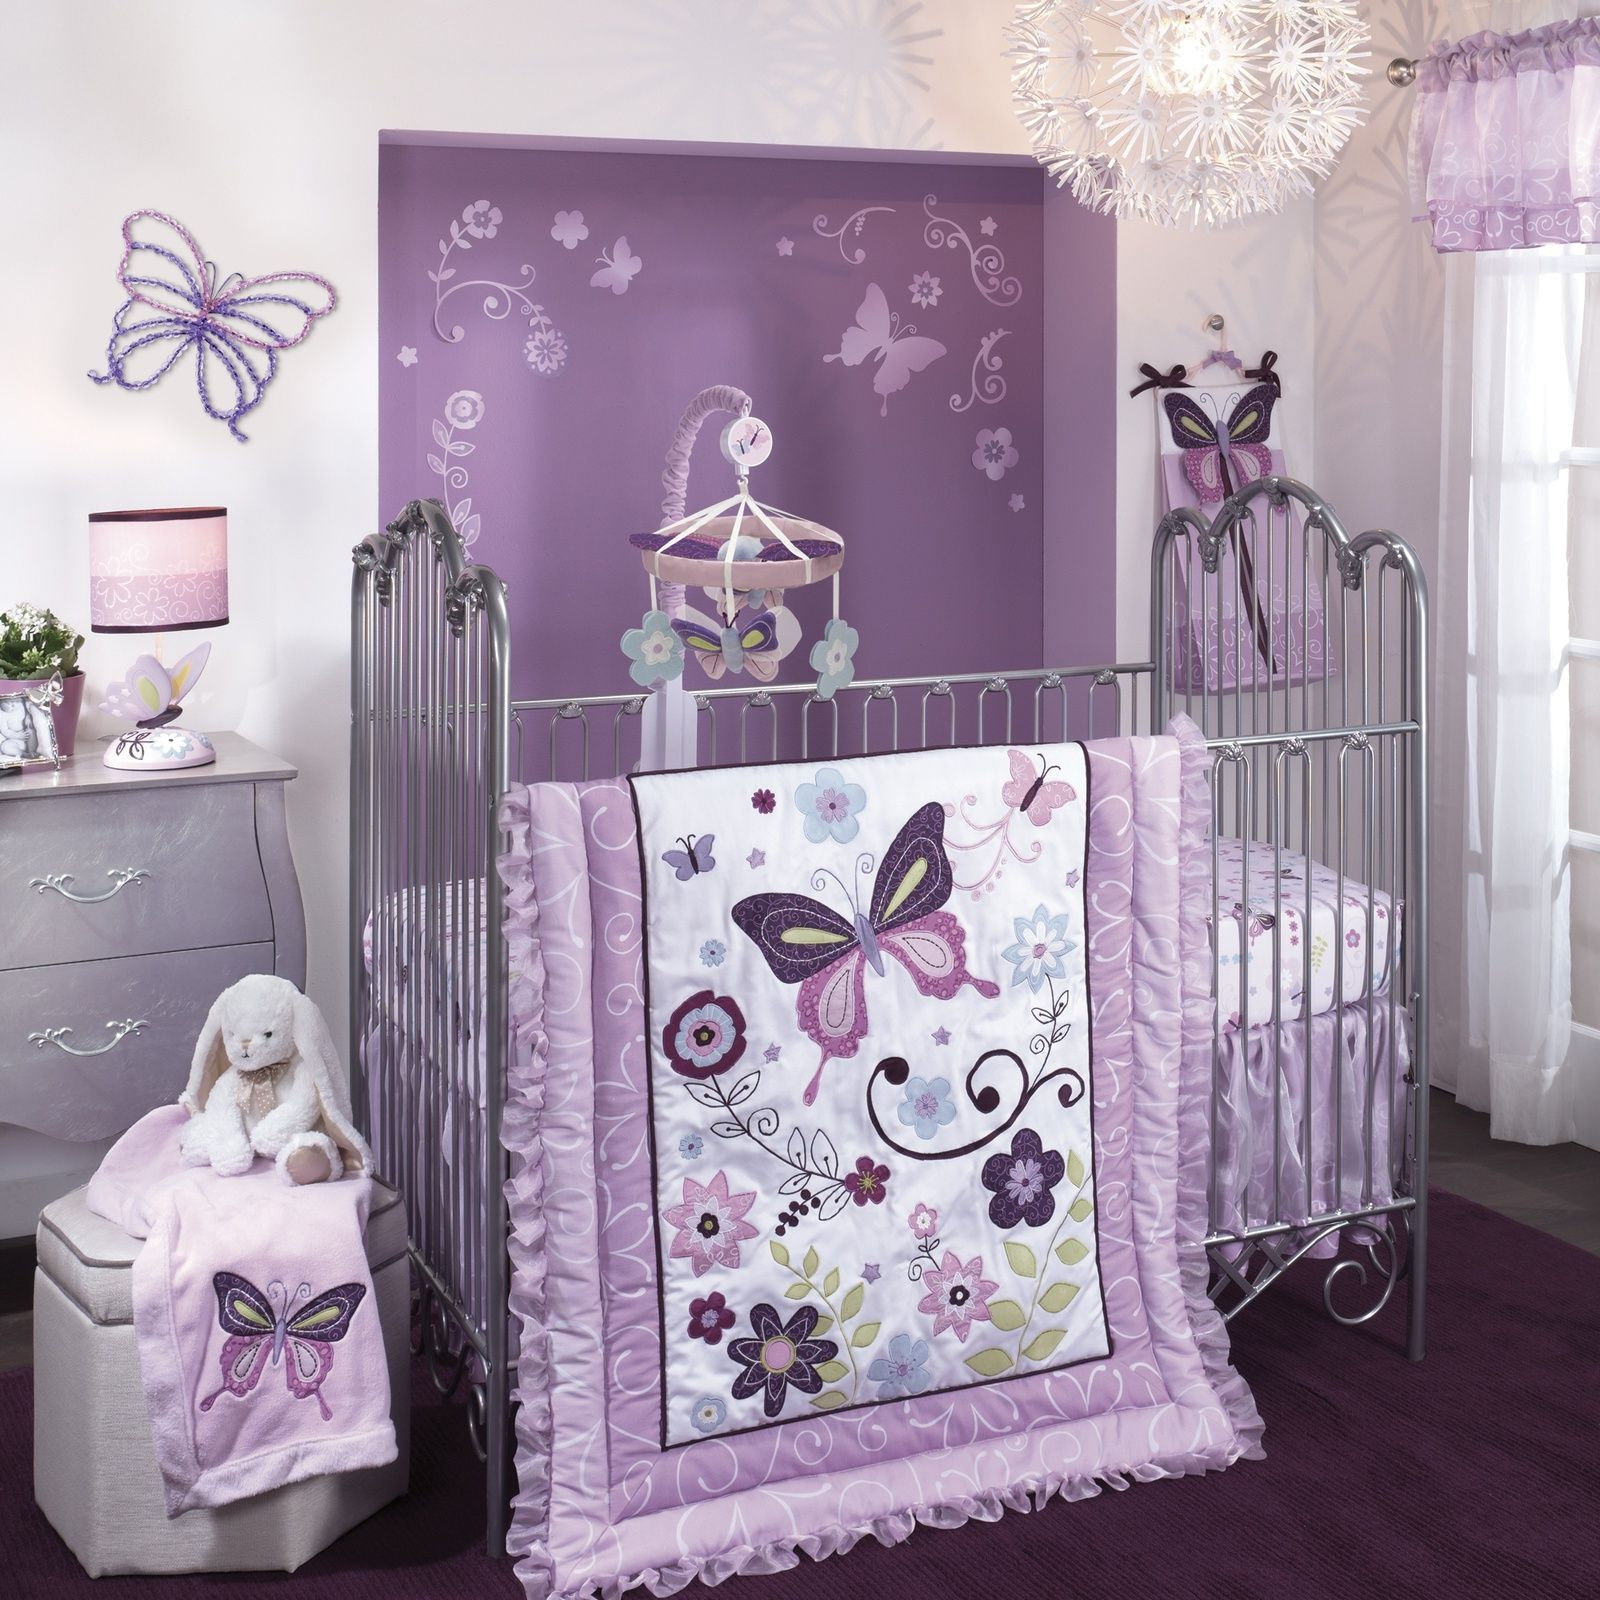 Bedroom cozy purple theme girl nursery ideas lambs and Baby room themes for girl